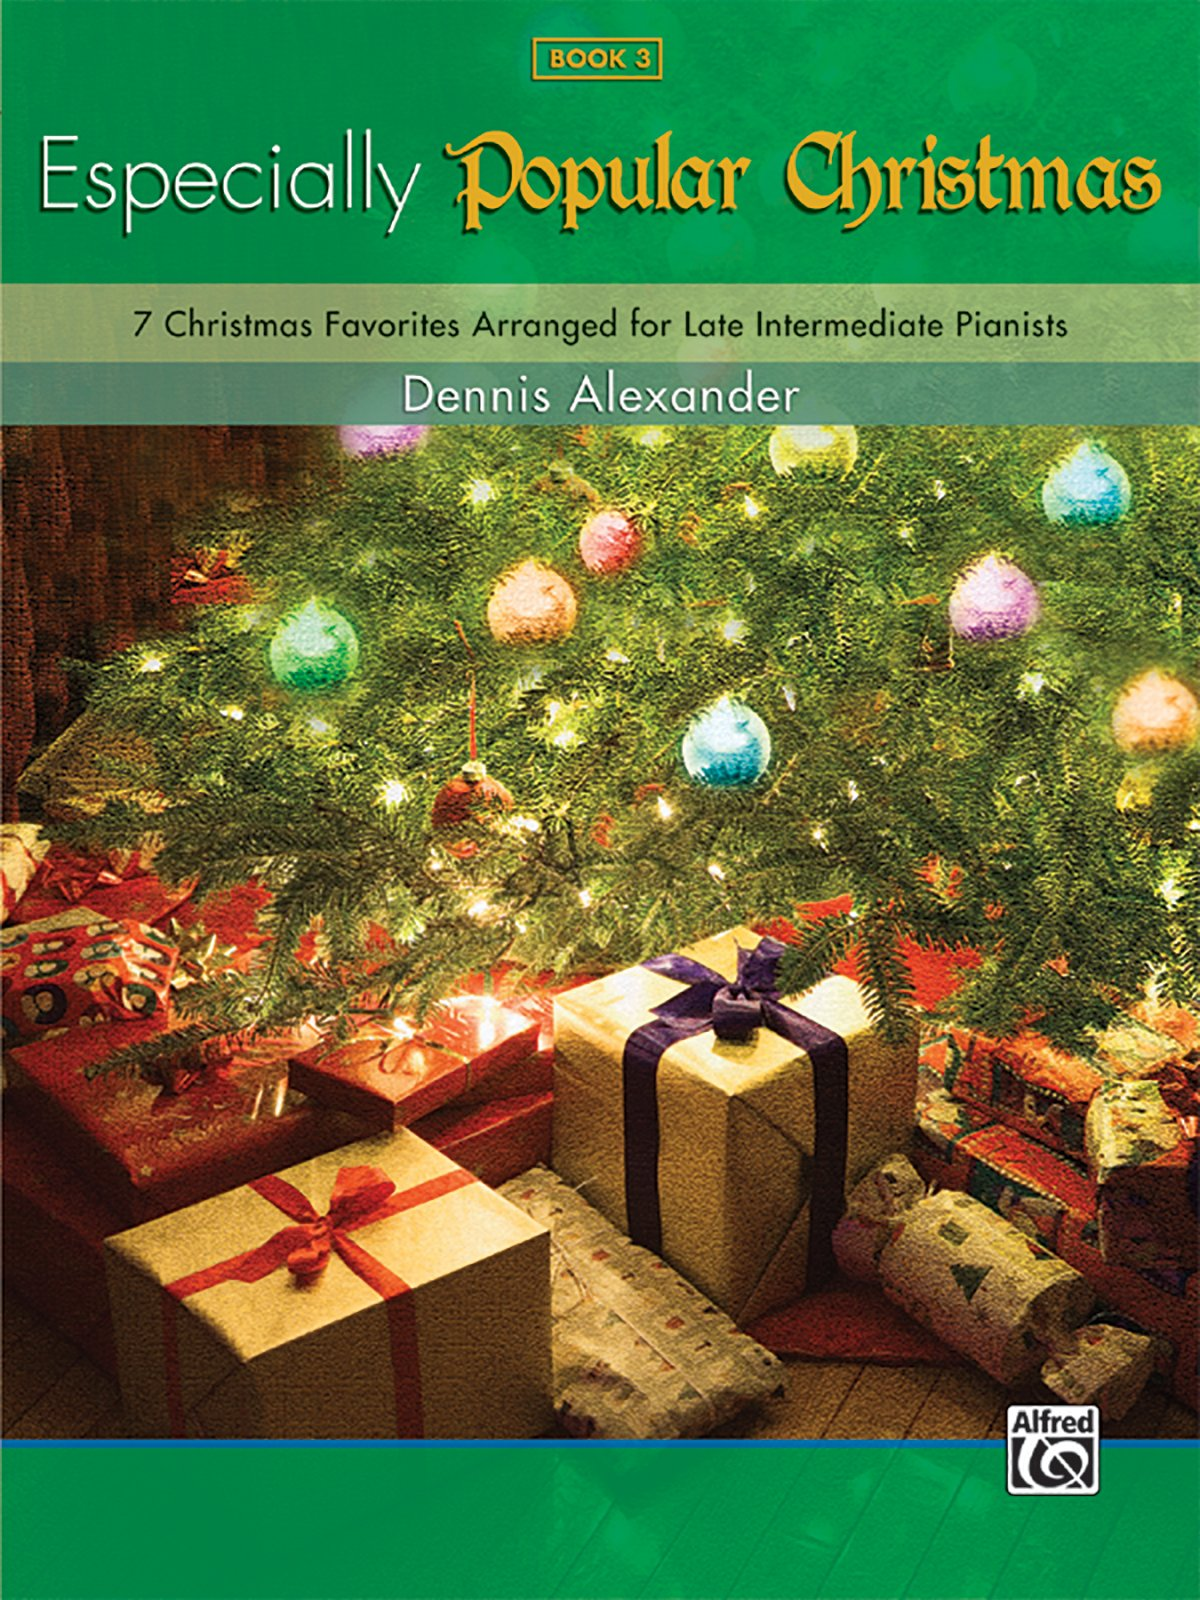 Especially for Christmas, Pop, Bk 3: 7 Christmas Favorites Arranged for Late Intermediate Pianists